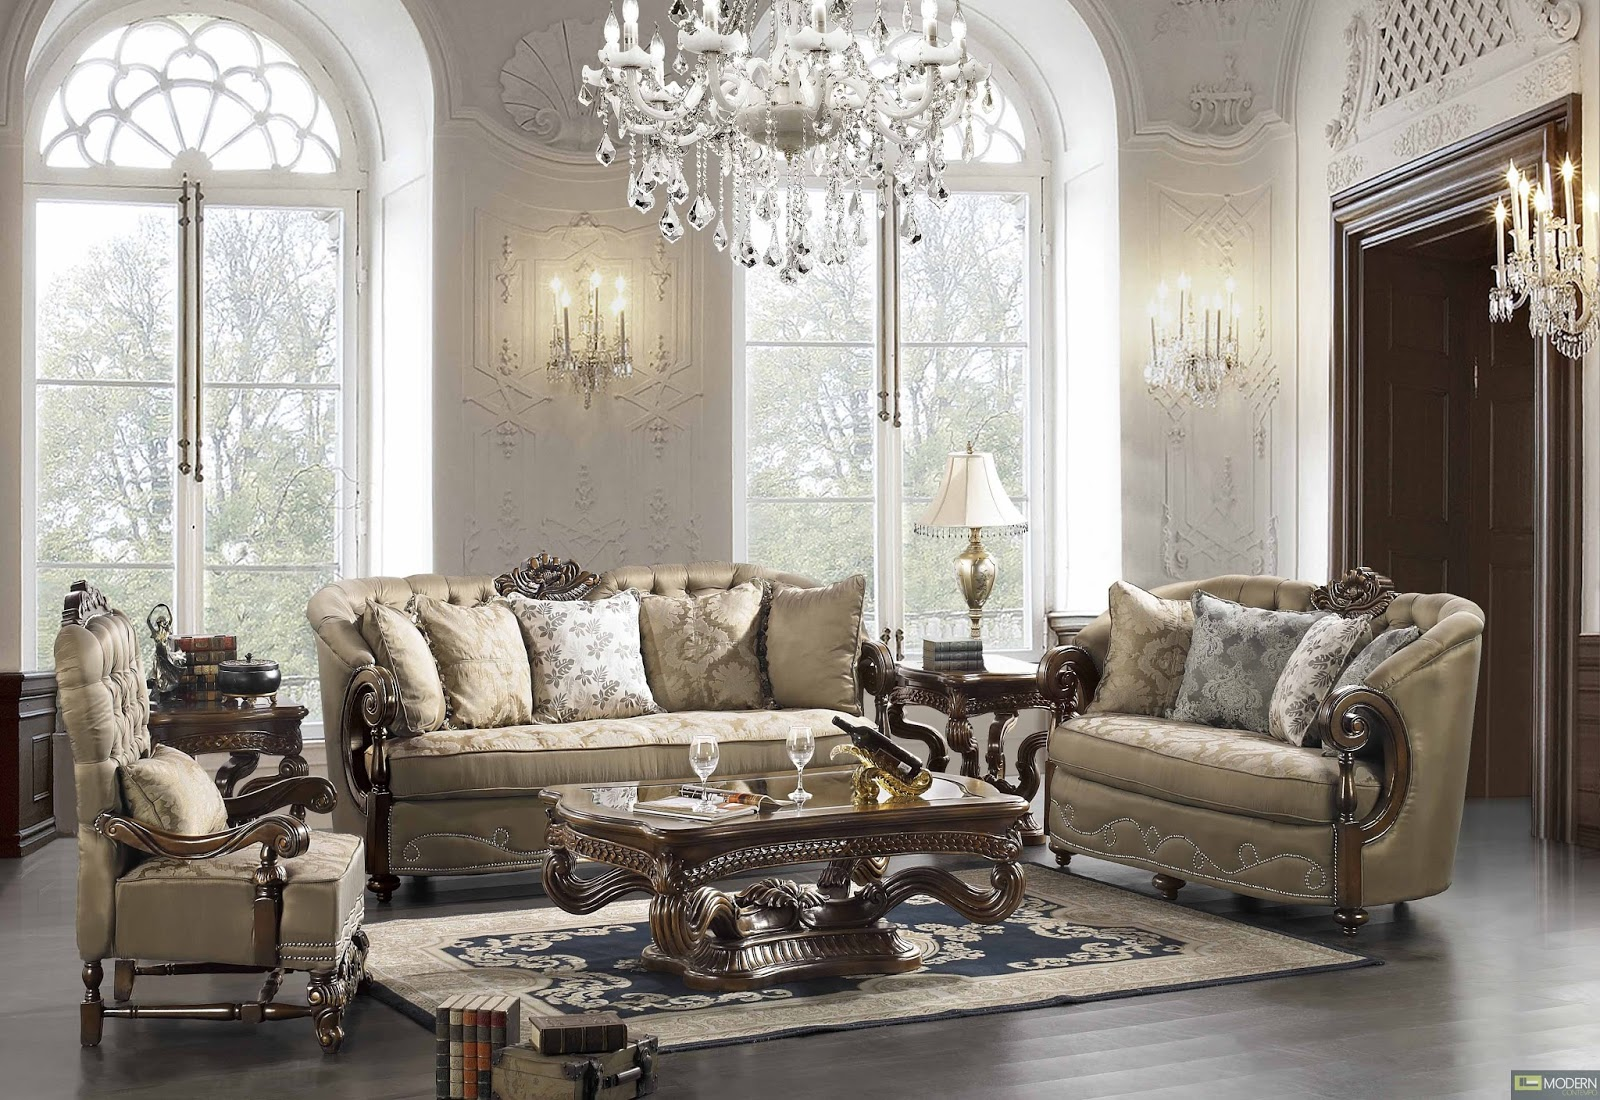 Best furniture ideas for home traditional classic Glamorous living room furniture